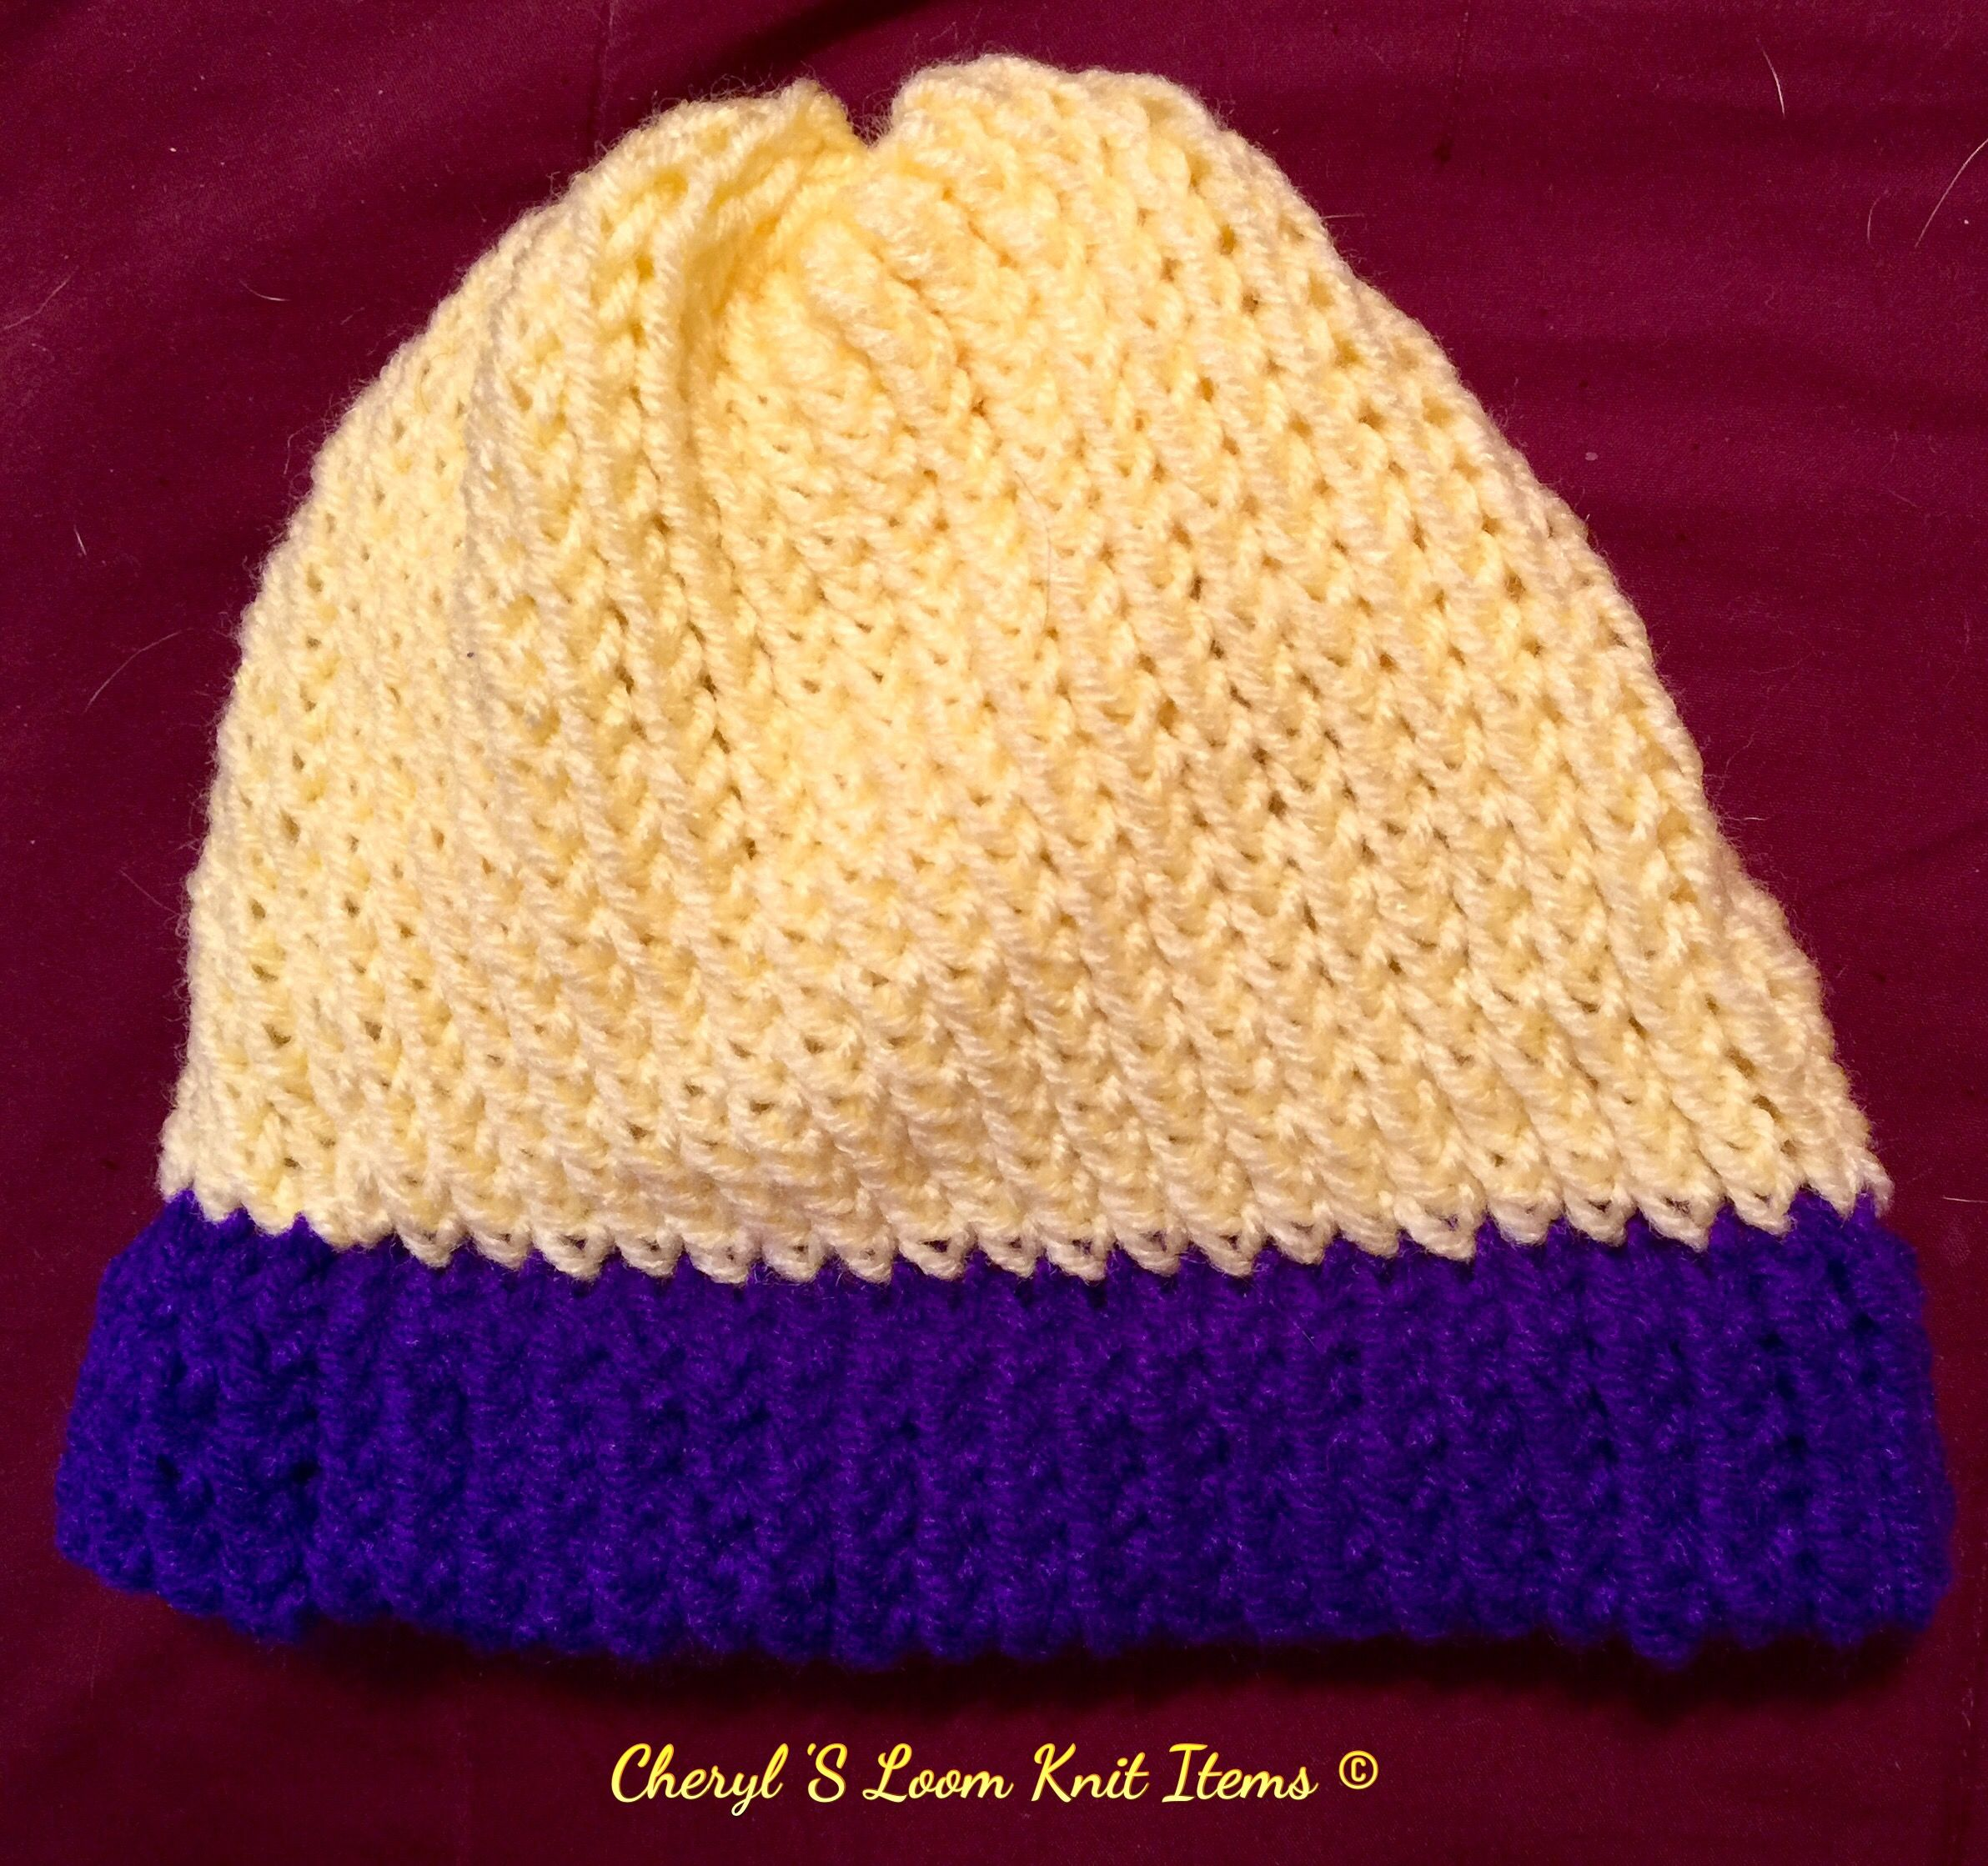 Loom Knit Childs Hat Loomed On The Medium Boye Light Weight Yarn